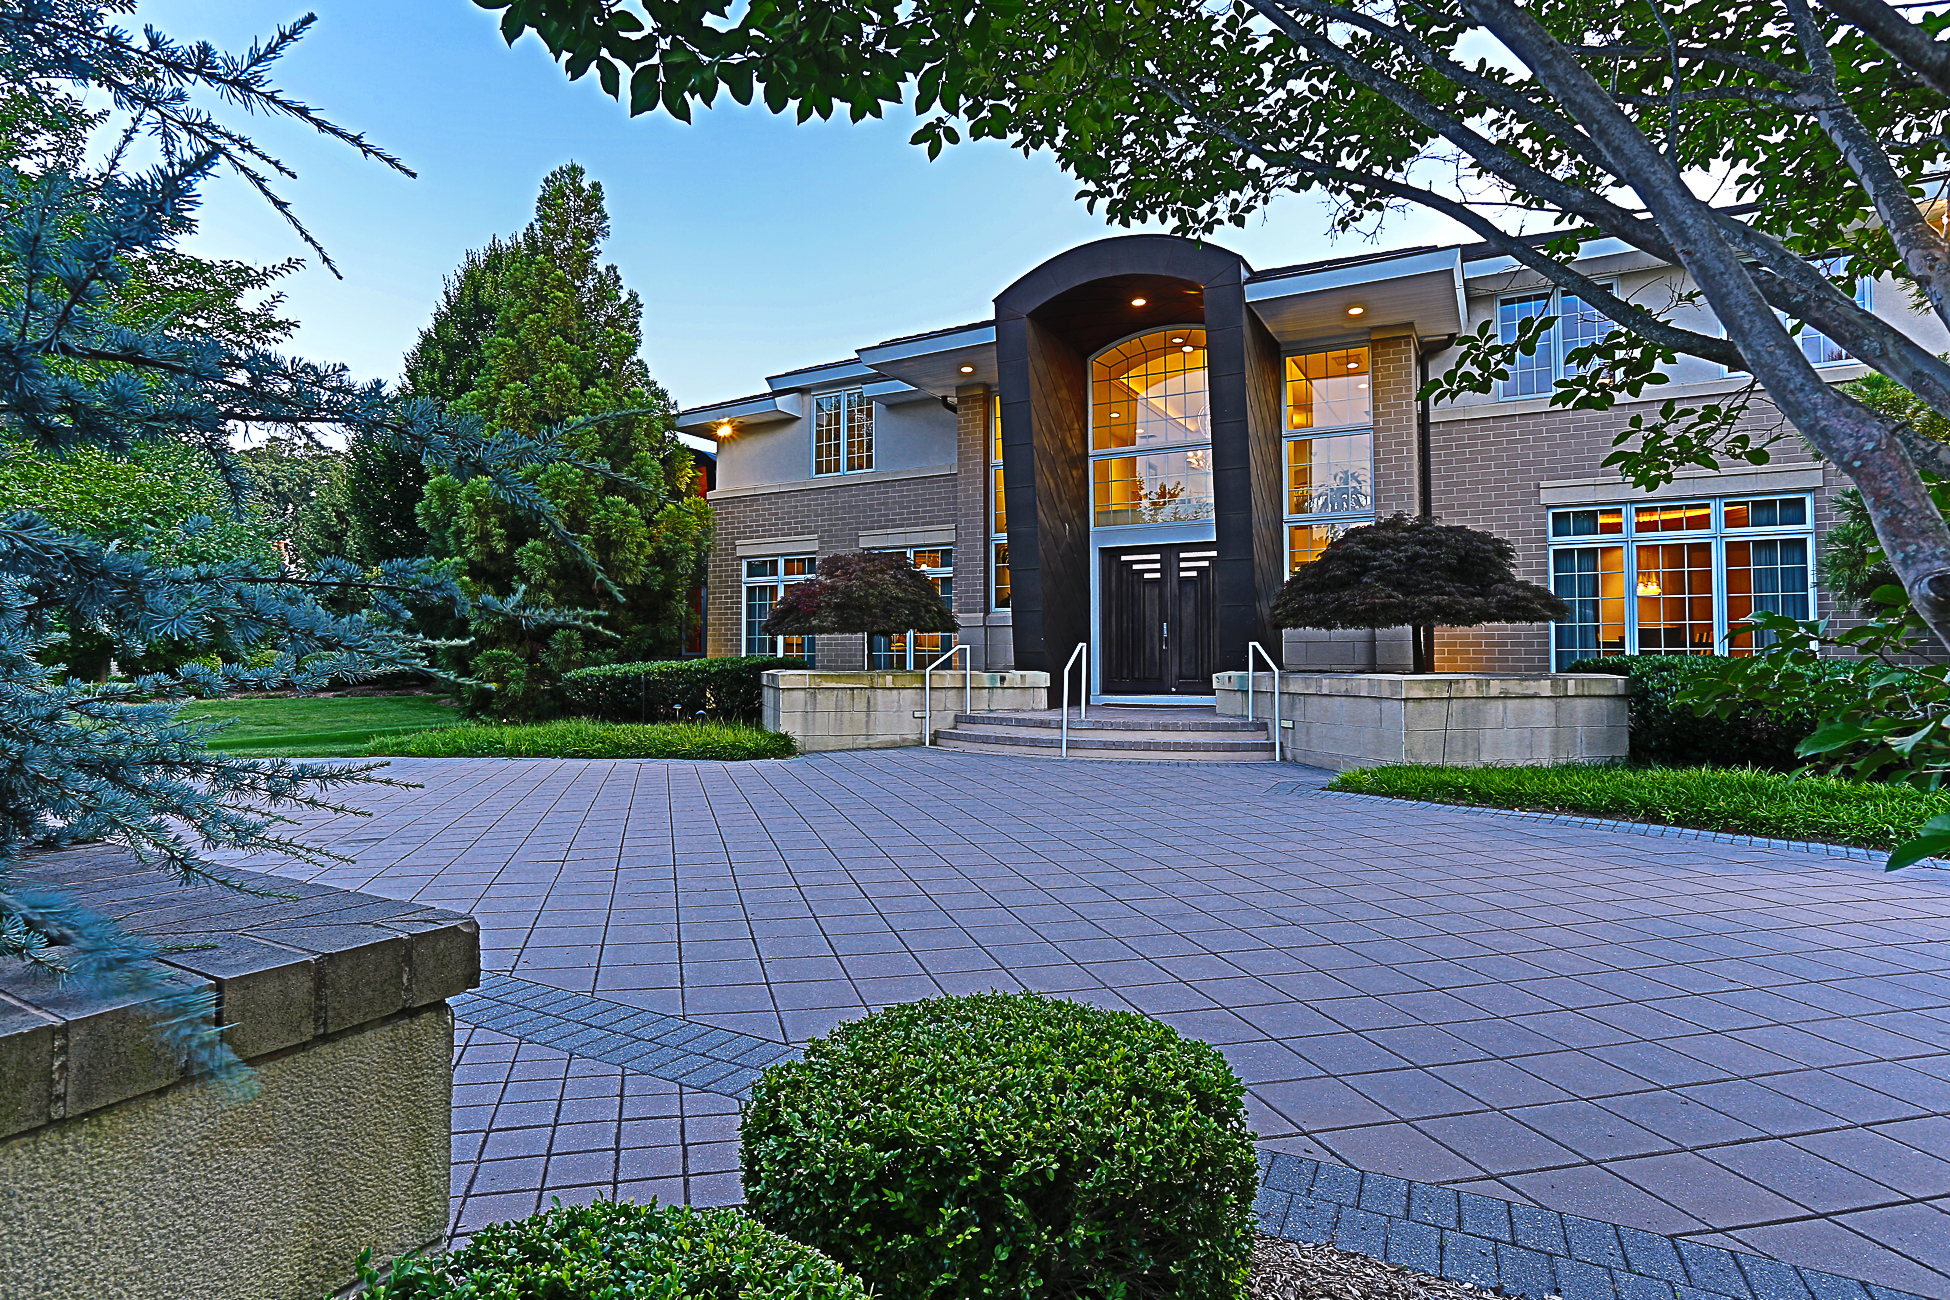 一戸建て のために 売買 アット Masterfully Designed - East Brunswick Township 5 Bel Air Court East Brunswick, New Jersey, 08816 United States